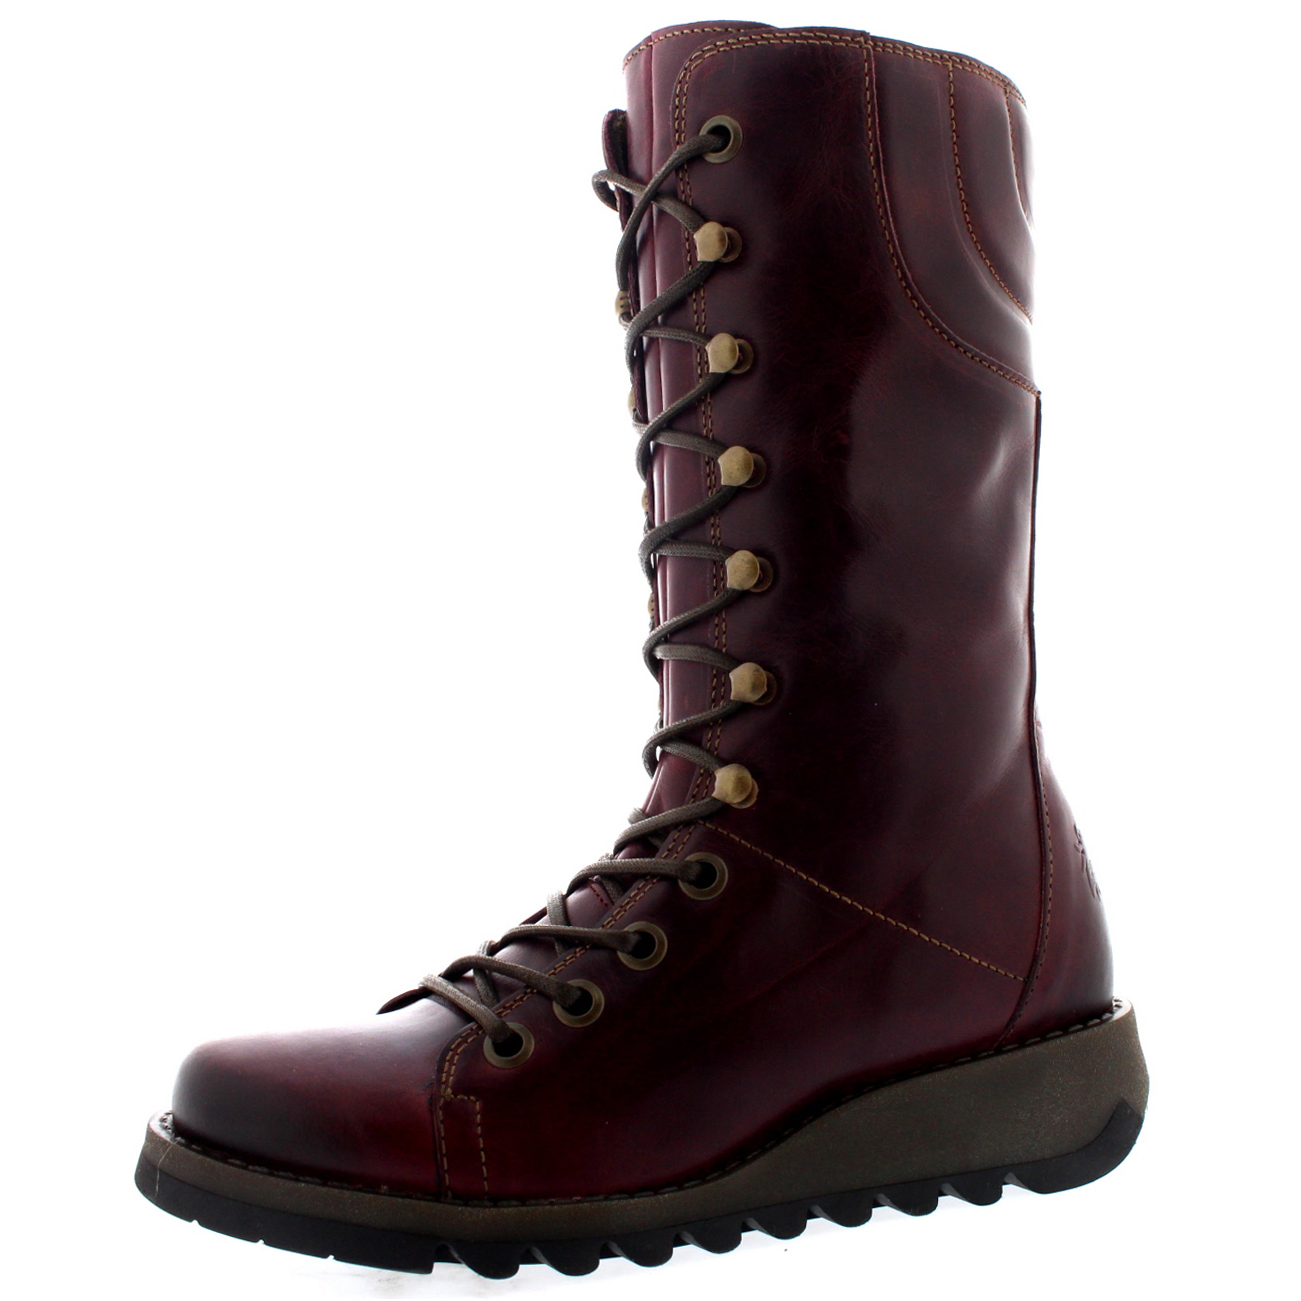 At custifara.ga we have over 1,, pairs and 2, styles of cowgirl boots and western booties for women. With such a vast selection, you're sure to find the perfect pair of boots that feel great and matches your western style.